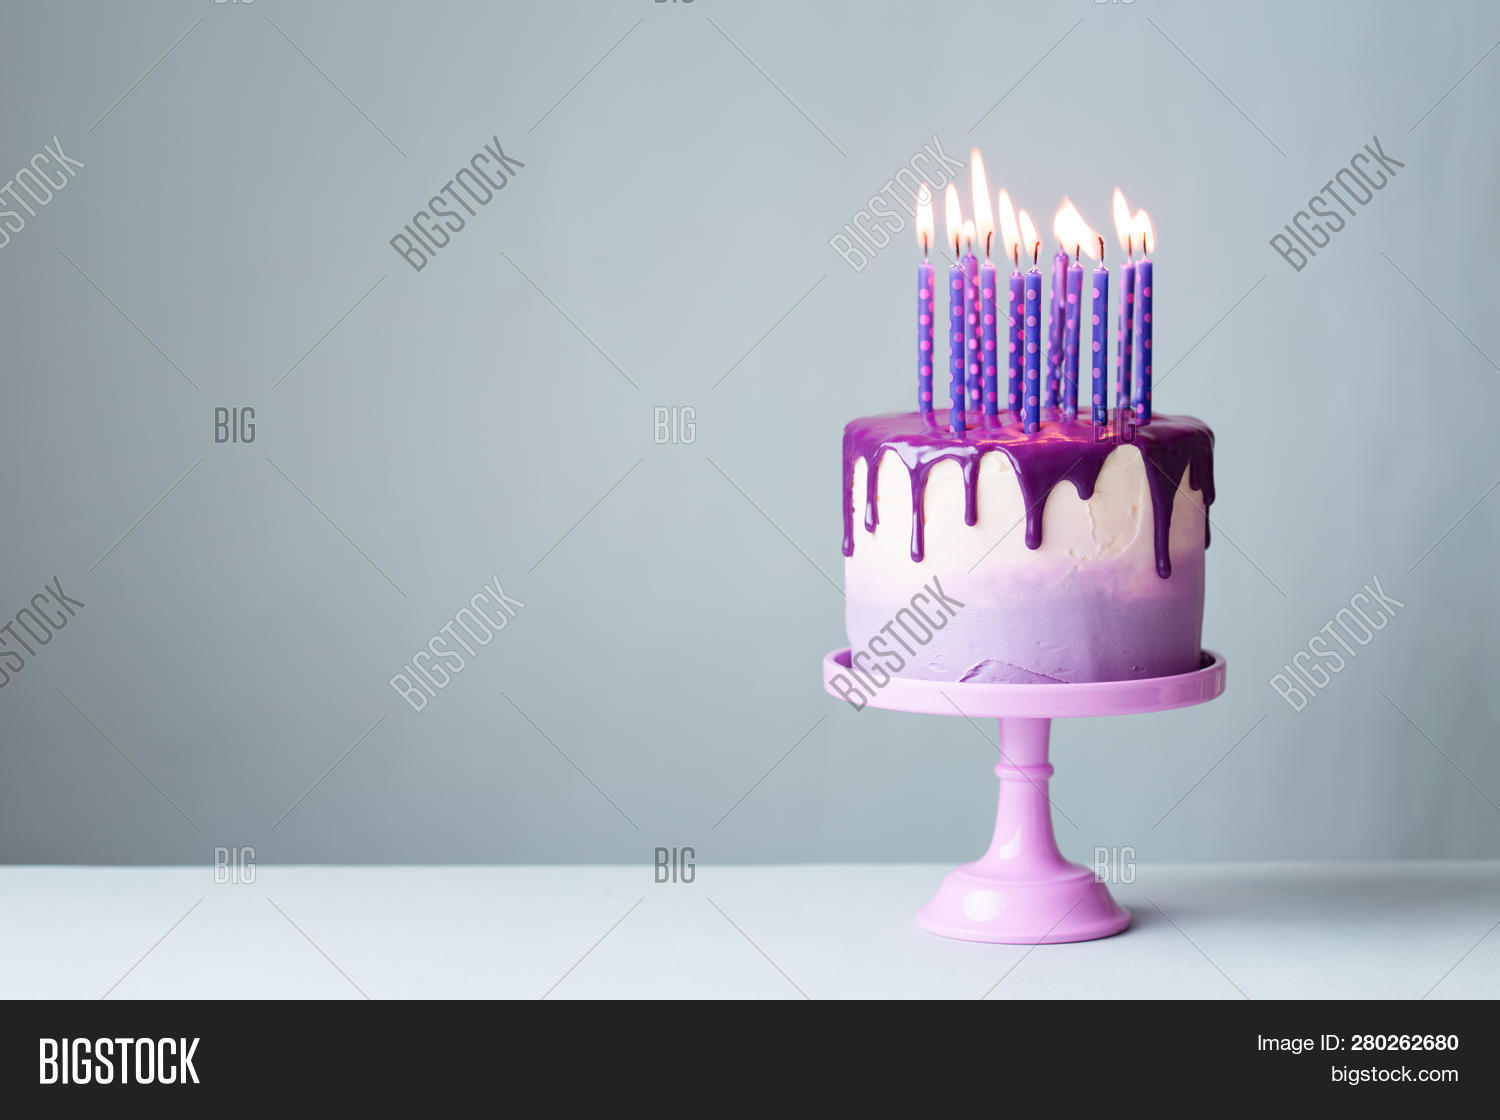 Terrific Birthday Cake Drip Image Photo Free Trial Bigstock Funny Birthday Cards Online Hendilapandamsfinfo